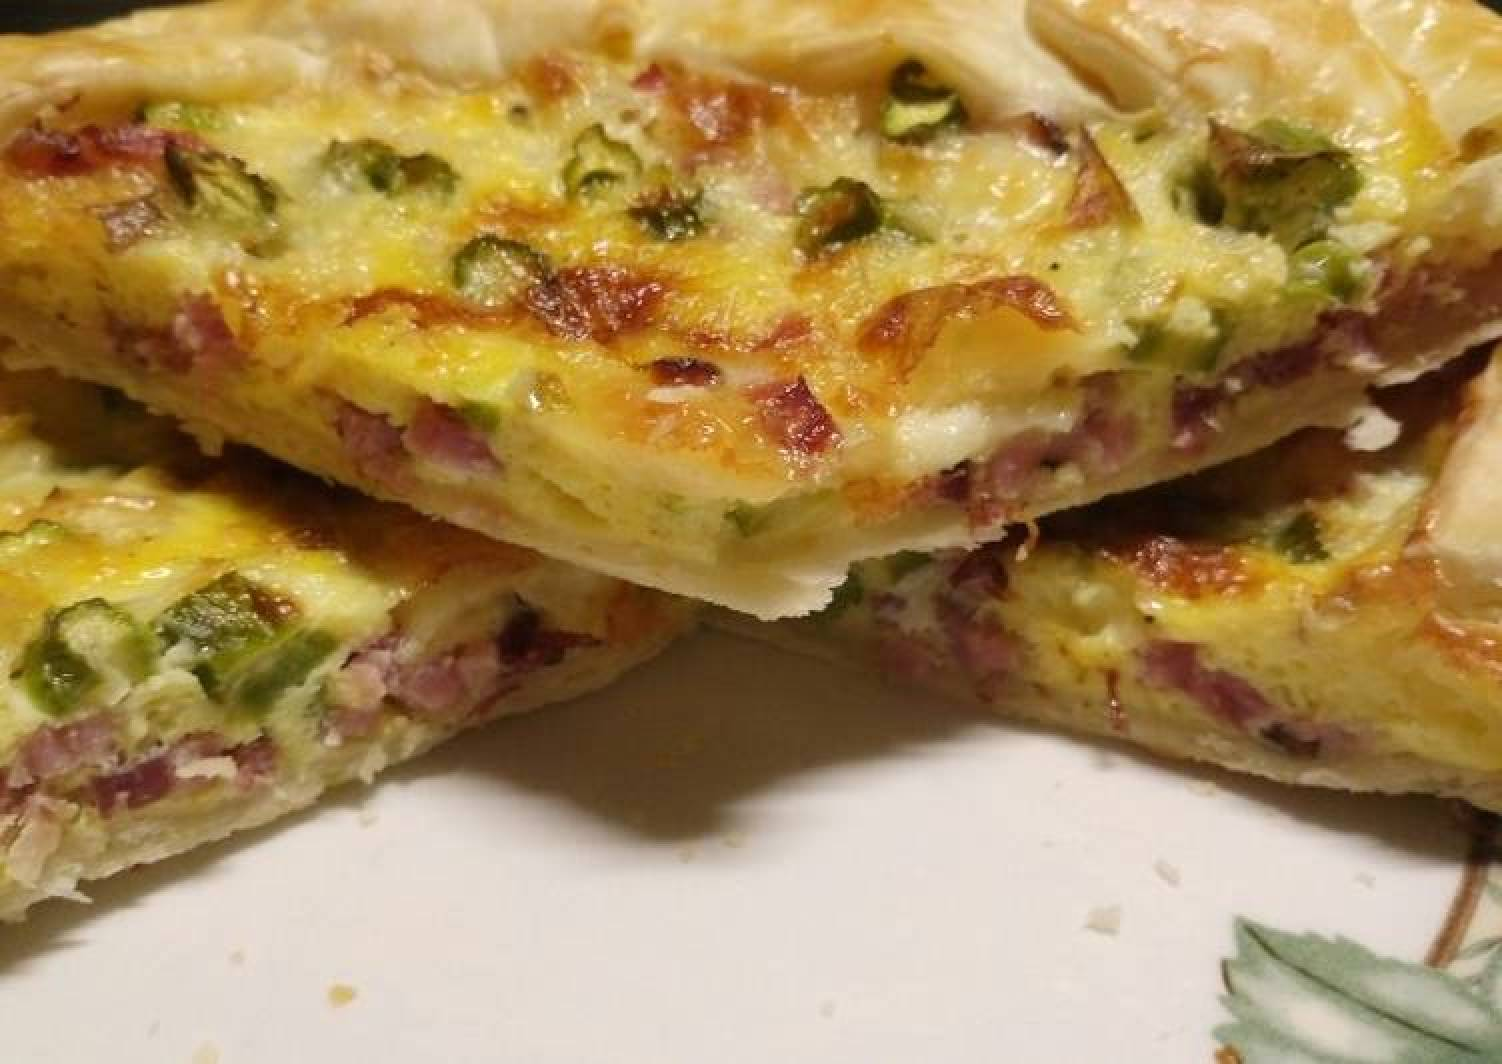 Speck, brie and asparagus pie